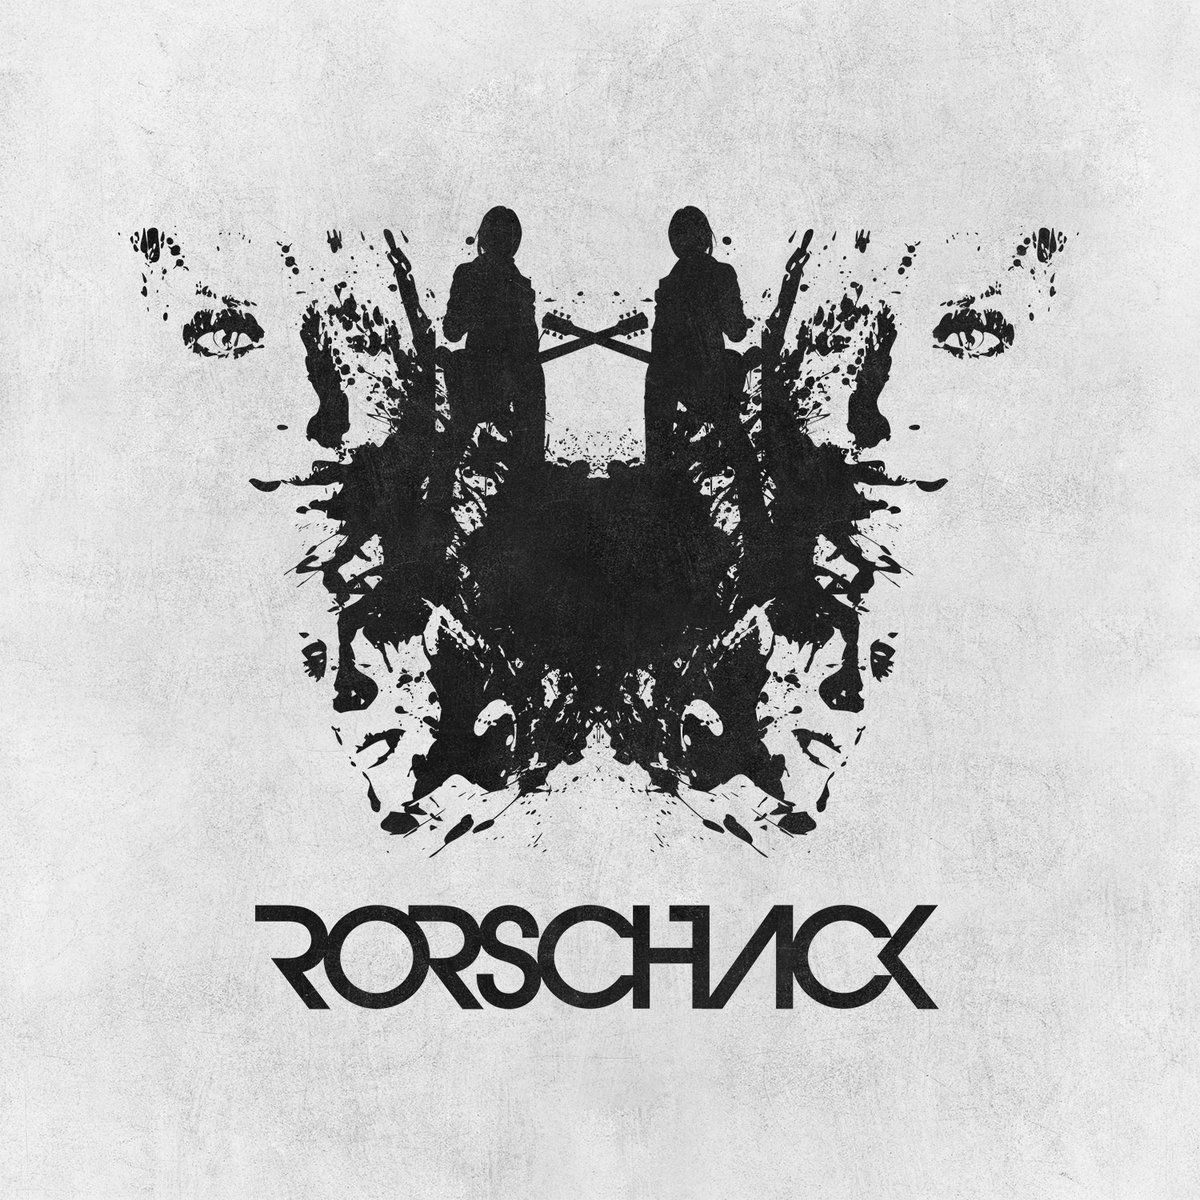 Mark Eliyahu - Coming Back (Rorschack Remix) @ 'All of the Above' album (bass, electronic)